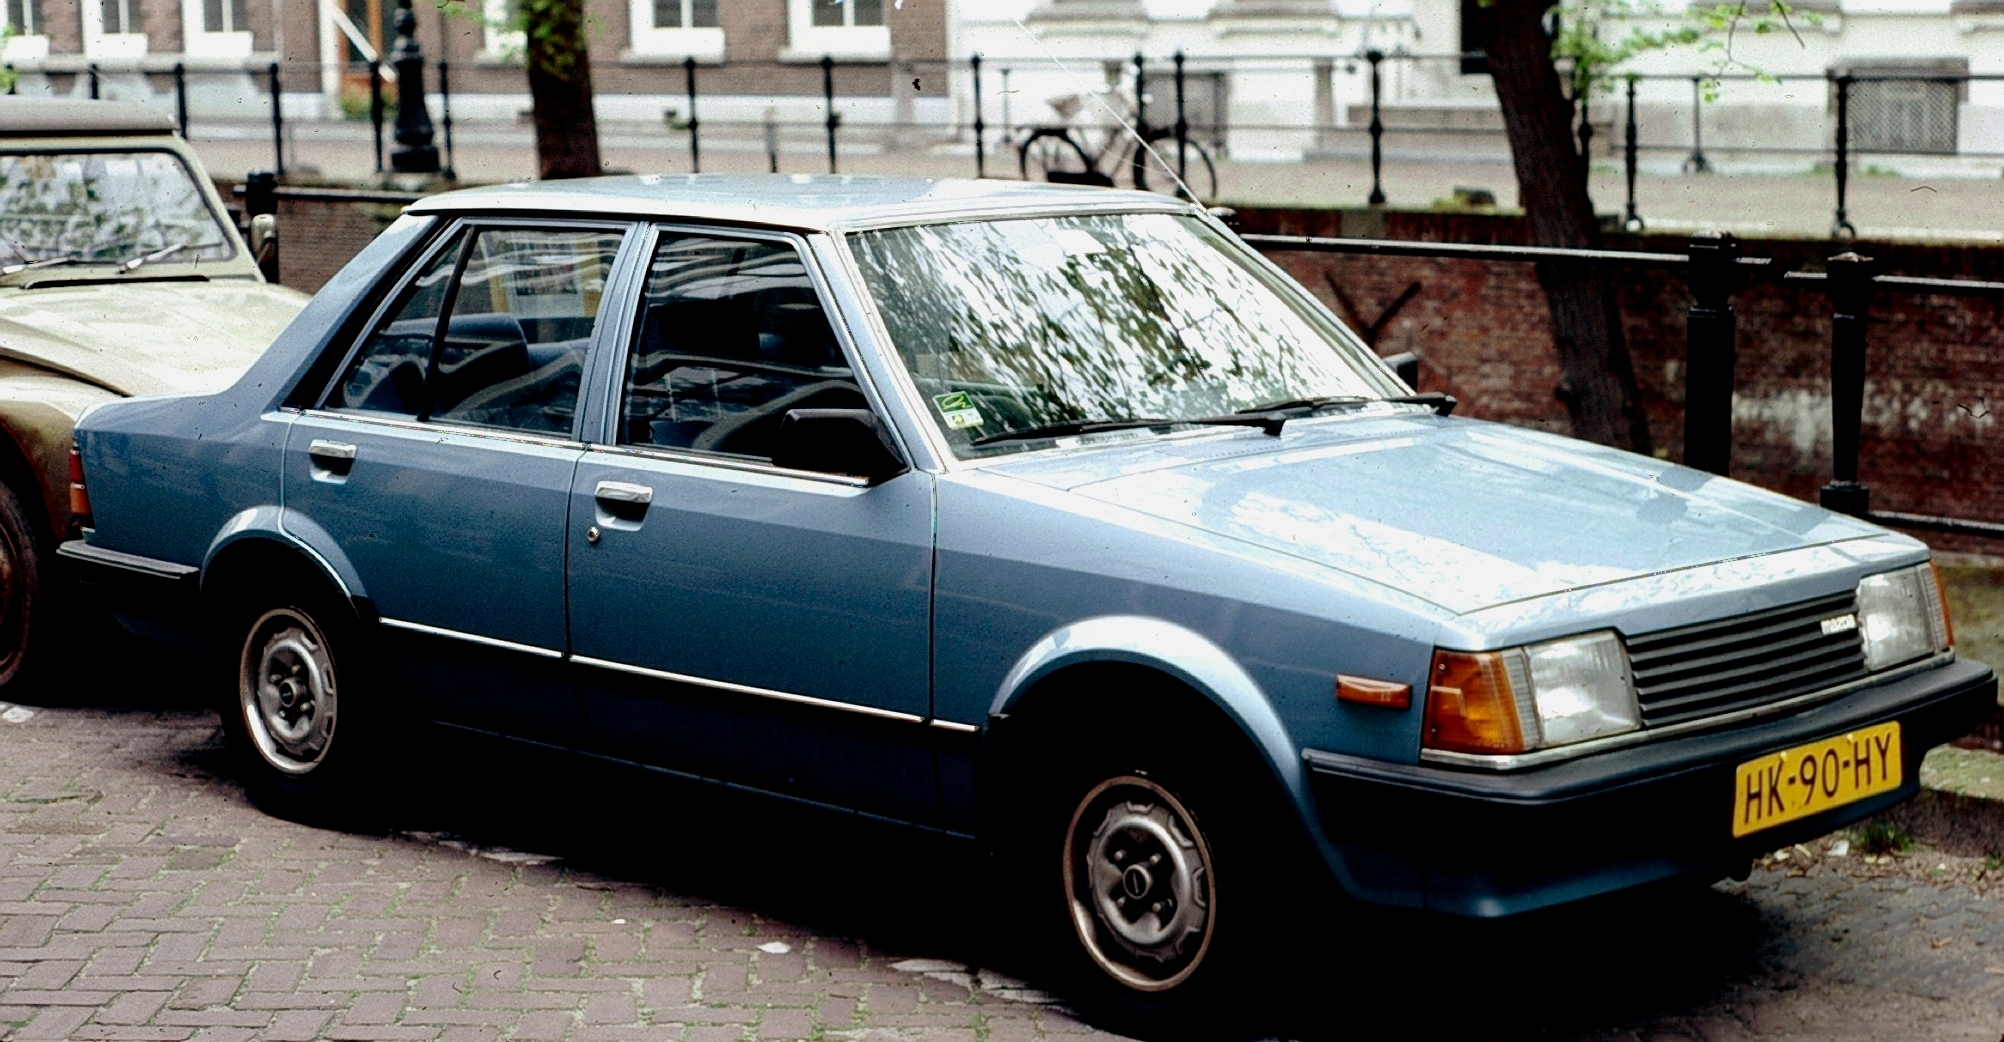 Mazda 323 1980 Review Amazing Pictures And Images Look At The Car